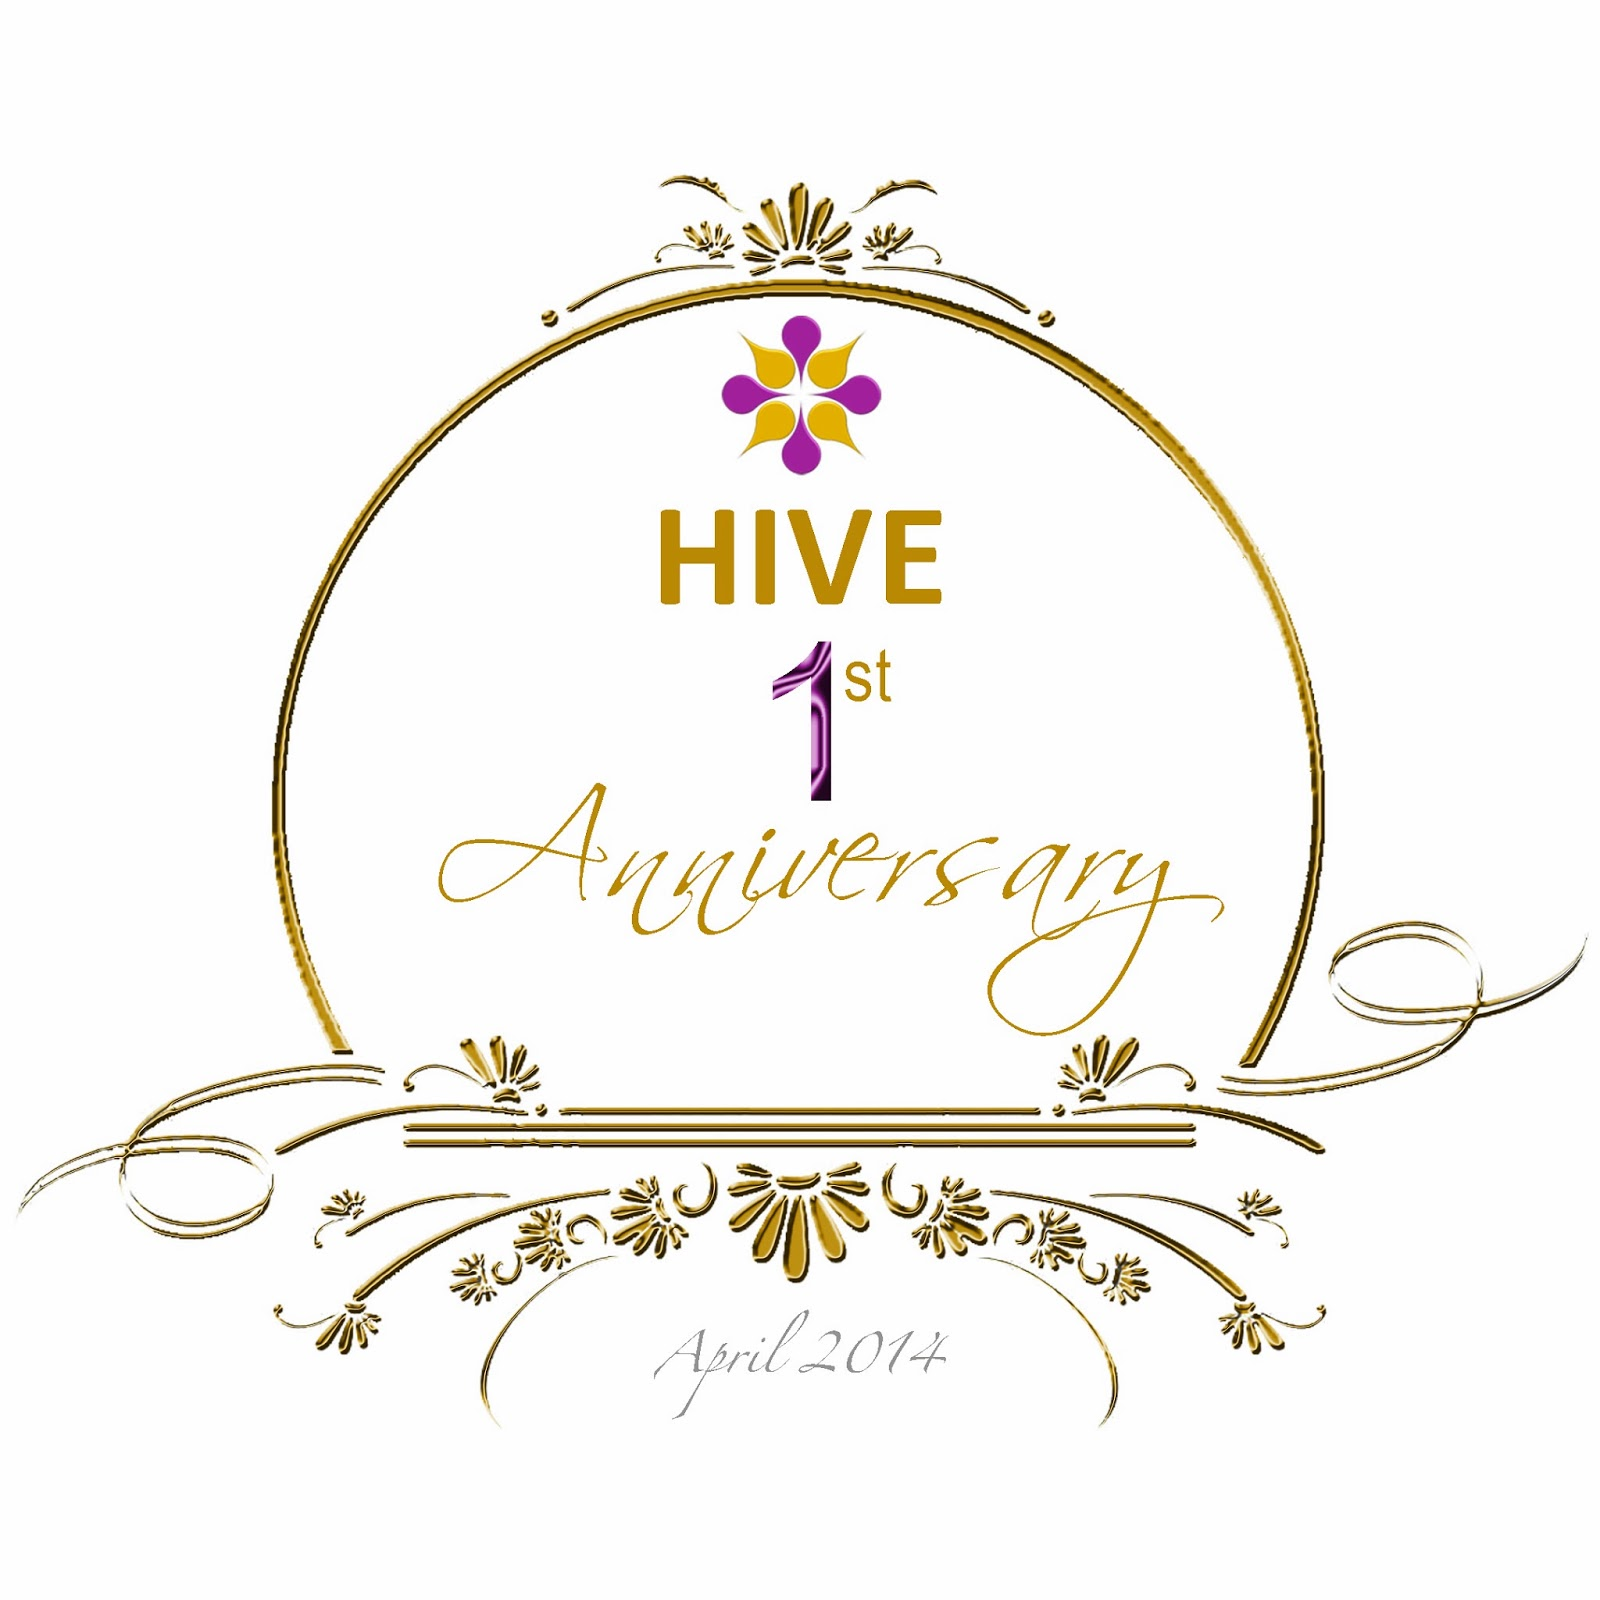 March hive enterprise